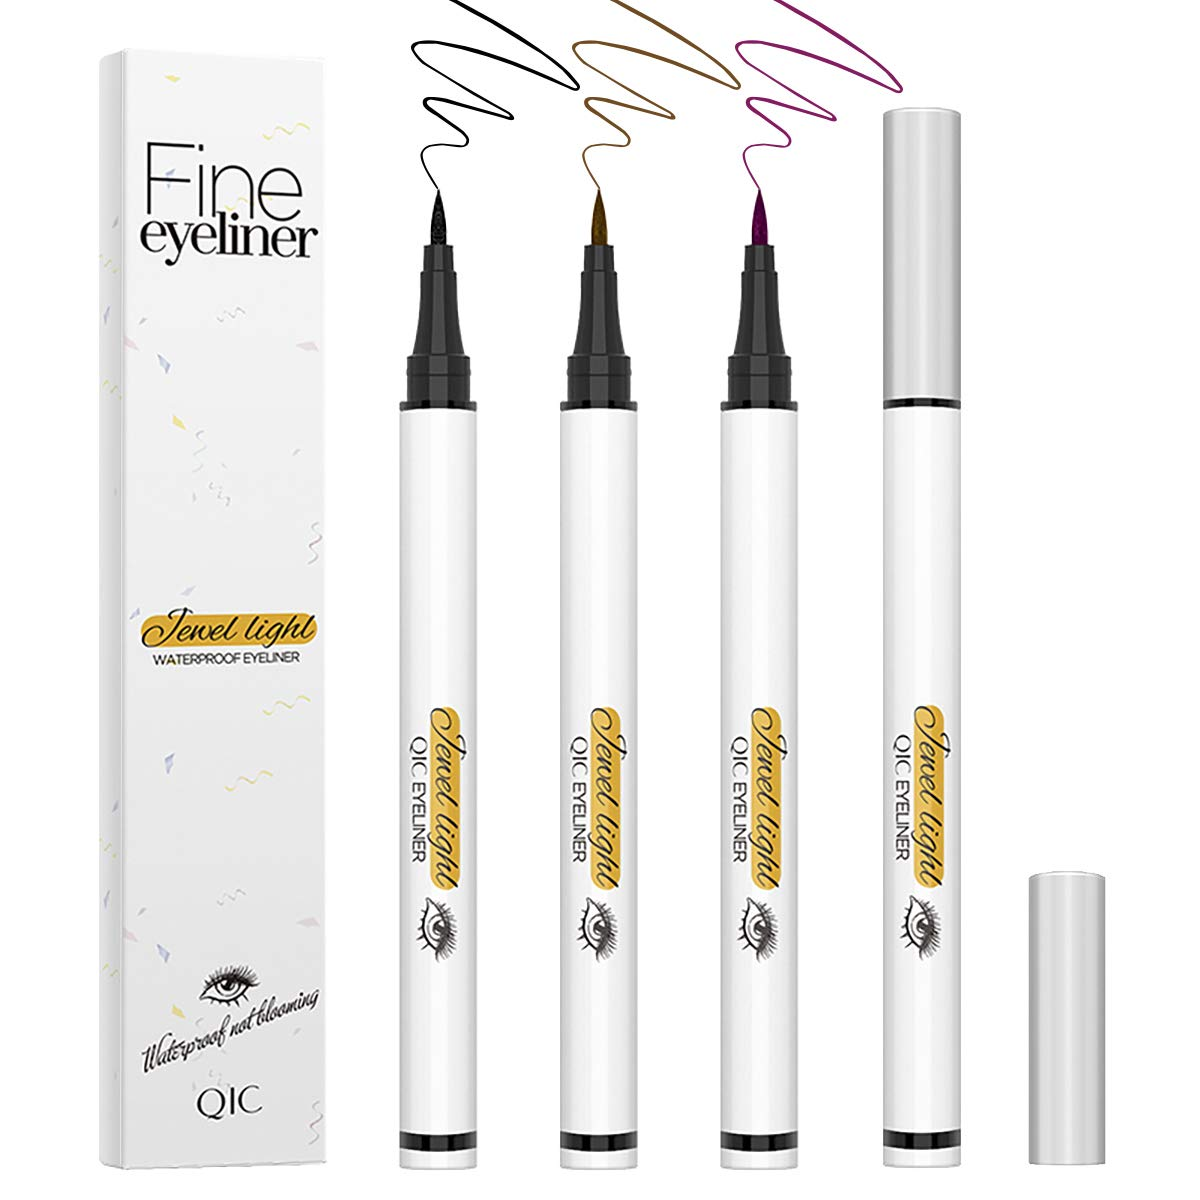 3 Free shipping New Colors Liquid Eyeliner Pen Eye Proof Waterproof Hypoallergenic Ranking integrated 1st place